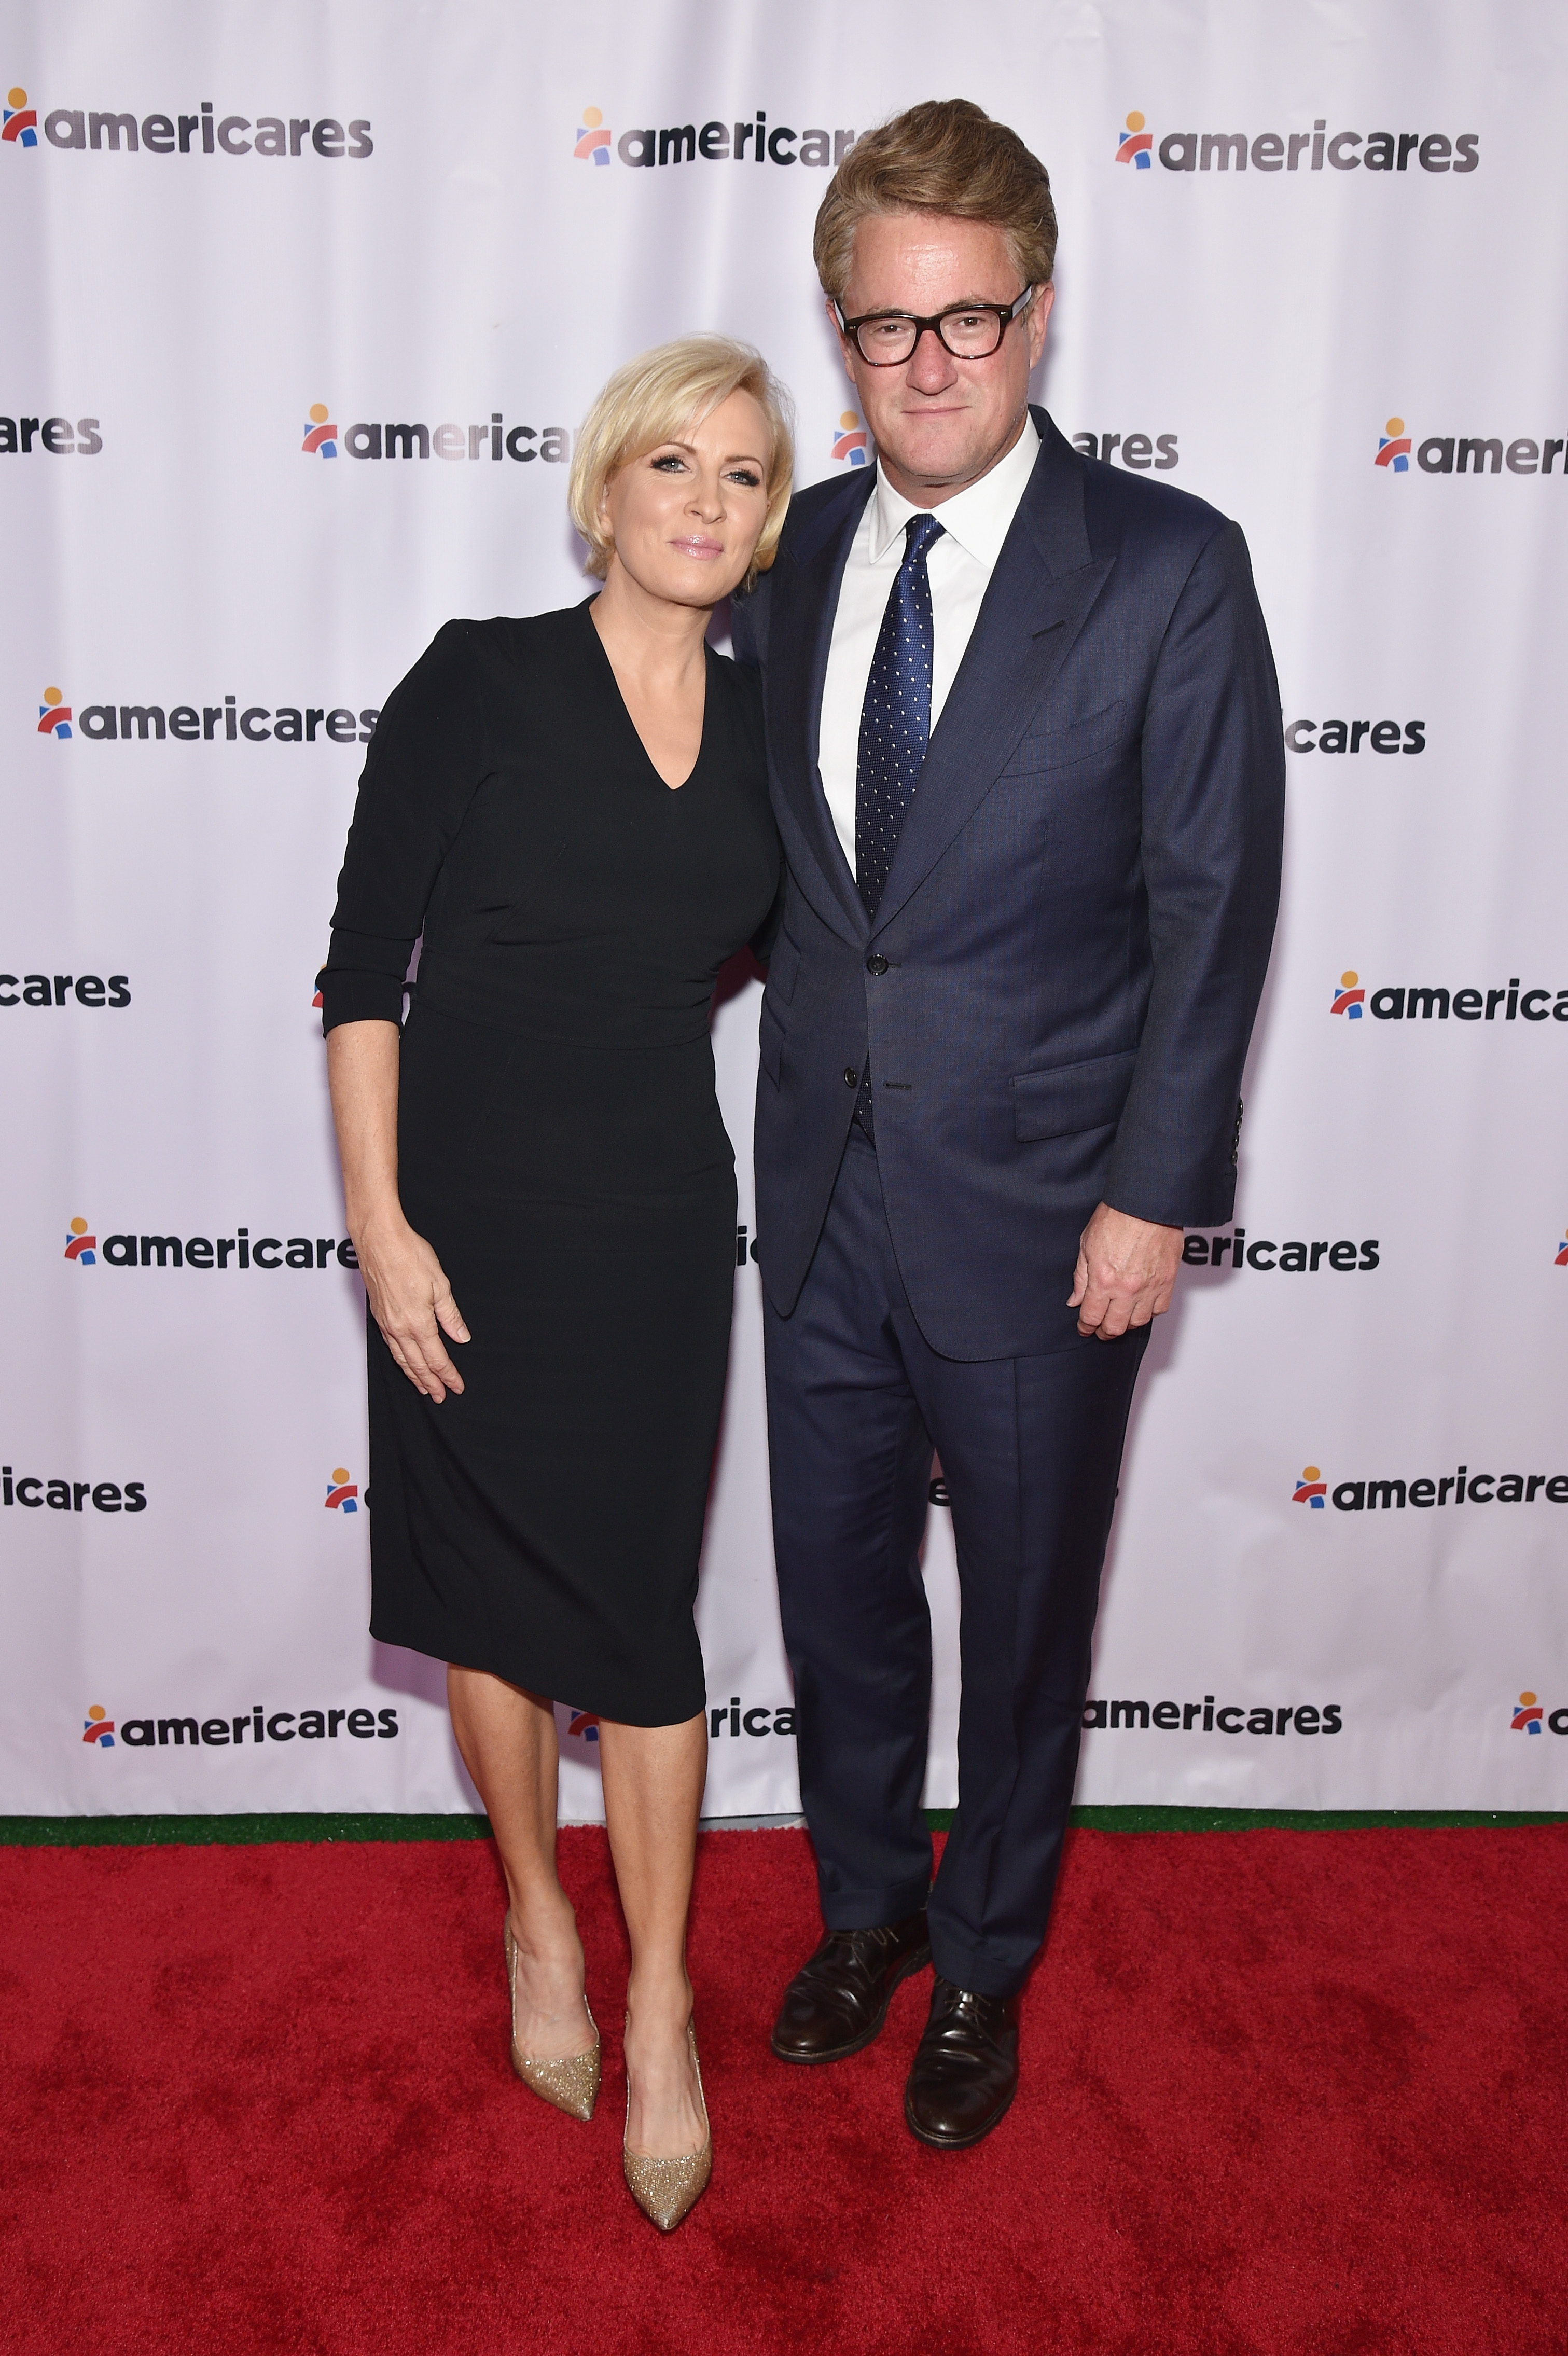 Co-hosts Mika Brzezinski (L) and Joe Scarborough attend the 2017 Americares Airlift Benefit on October 14, 2017 in Armonk, New York. (Photo by Bryan Bedder/Getty Images for Americares)